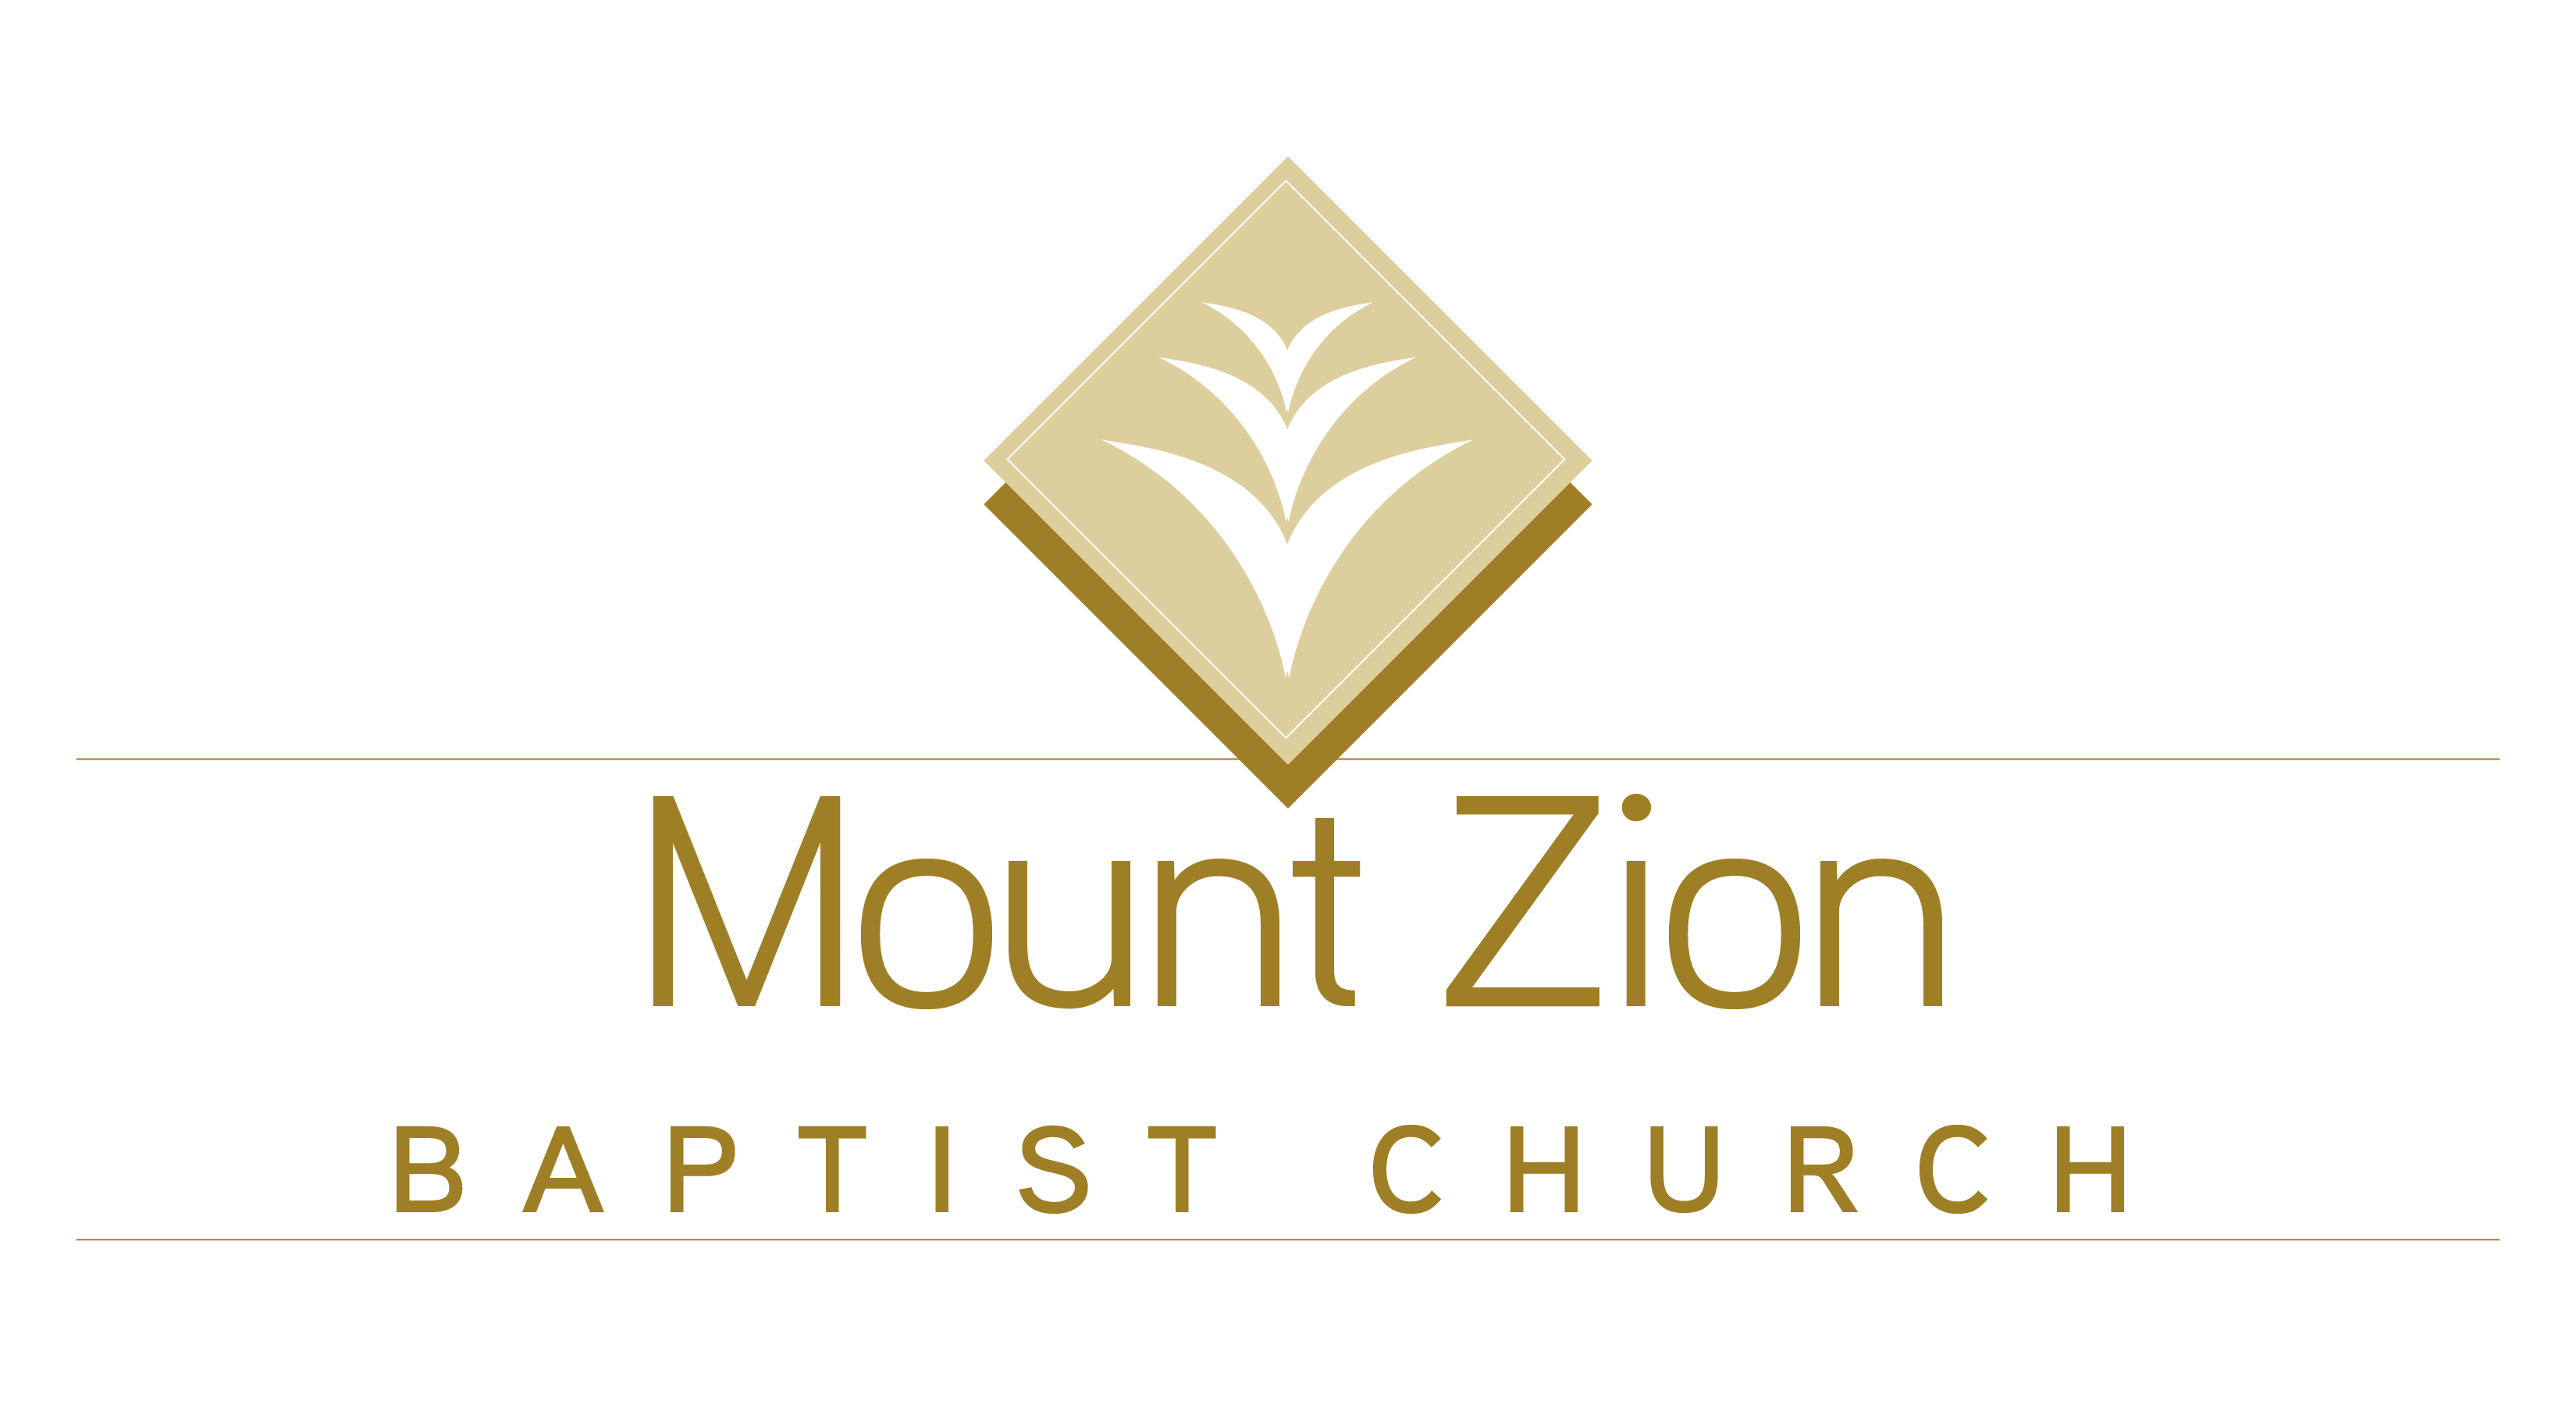 Mount Zion Baptist Church